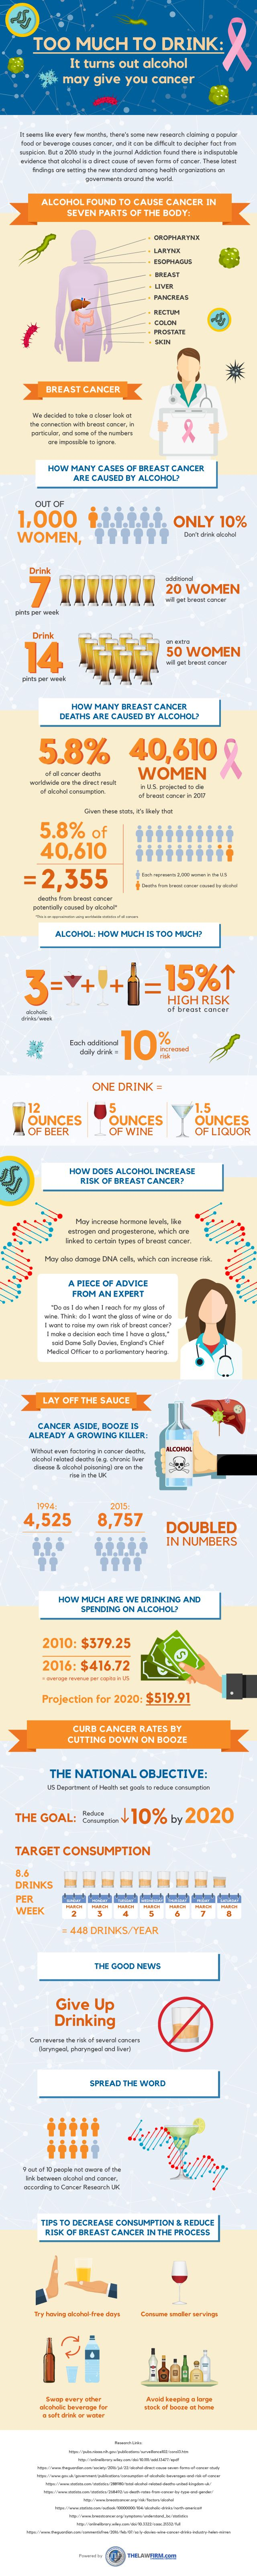 Turns Out That Too Much Alcohol Consumption May Cause Cancer